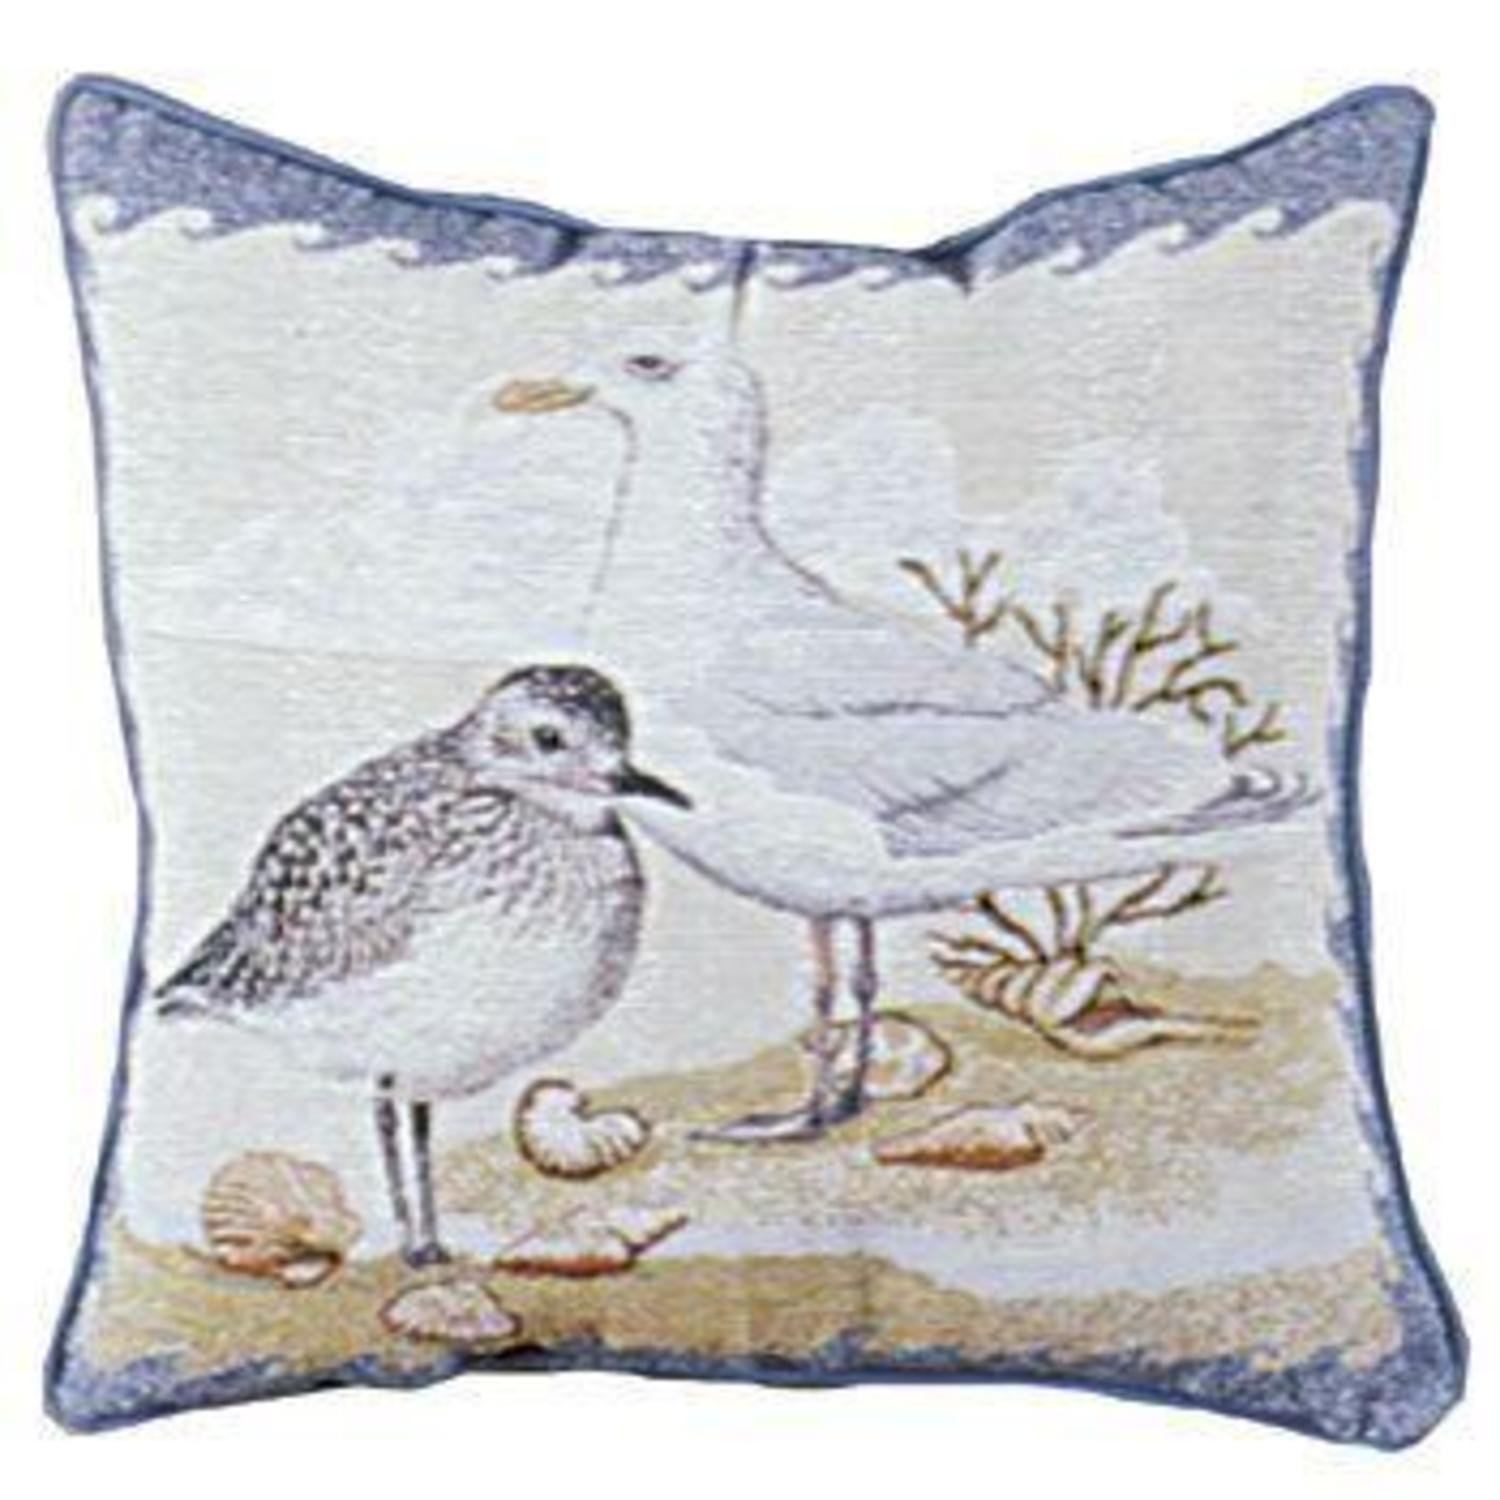 the homemade pillow love you covers pillows and decorative all blanket gallery beach need is cushion craftionary